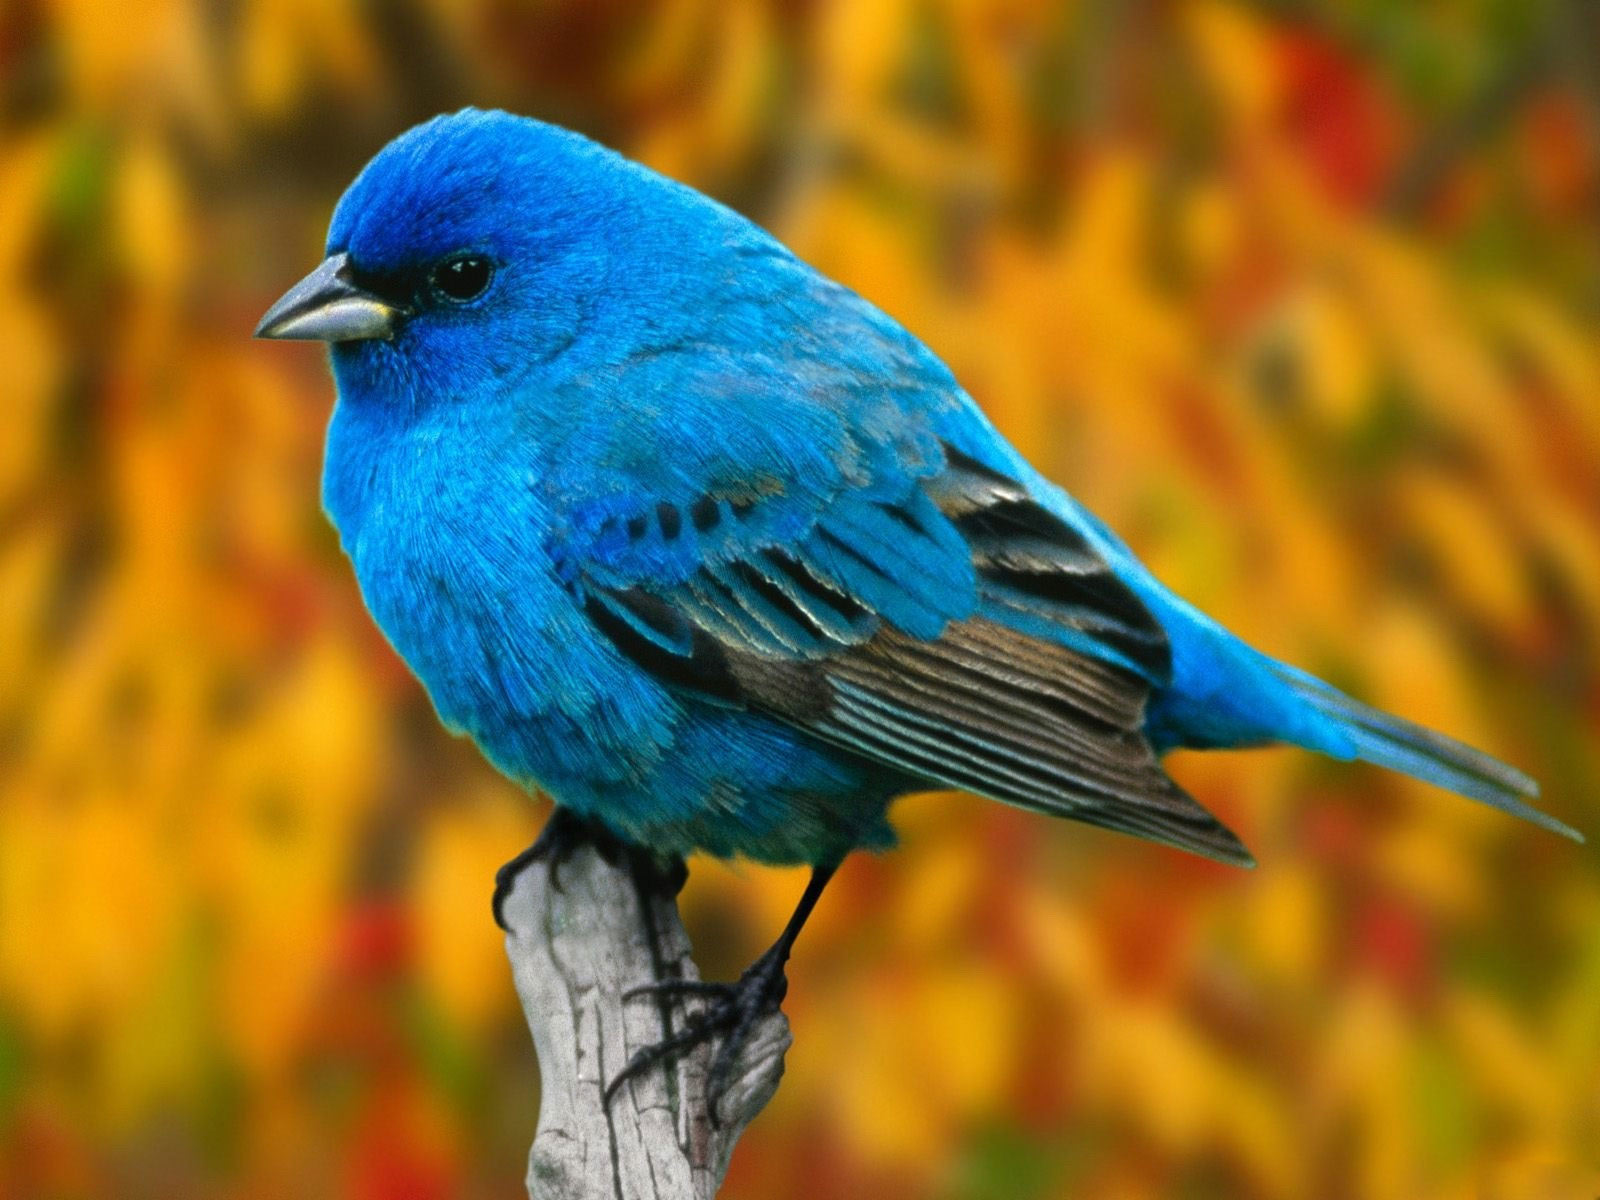 http://1.bp.blogspot.com/-B5HWCC2OWz4/TgHnWe9M0FI/AAAAAAAABGI/2UBtVyD2N9k/s1600/Beautiful+Birds+Wallpapers+%252815%2529.jpg